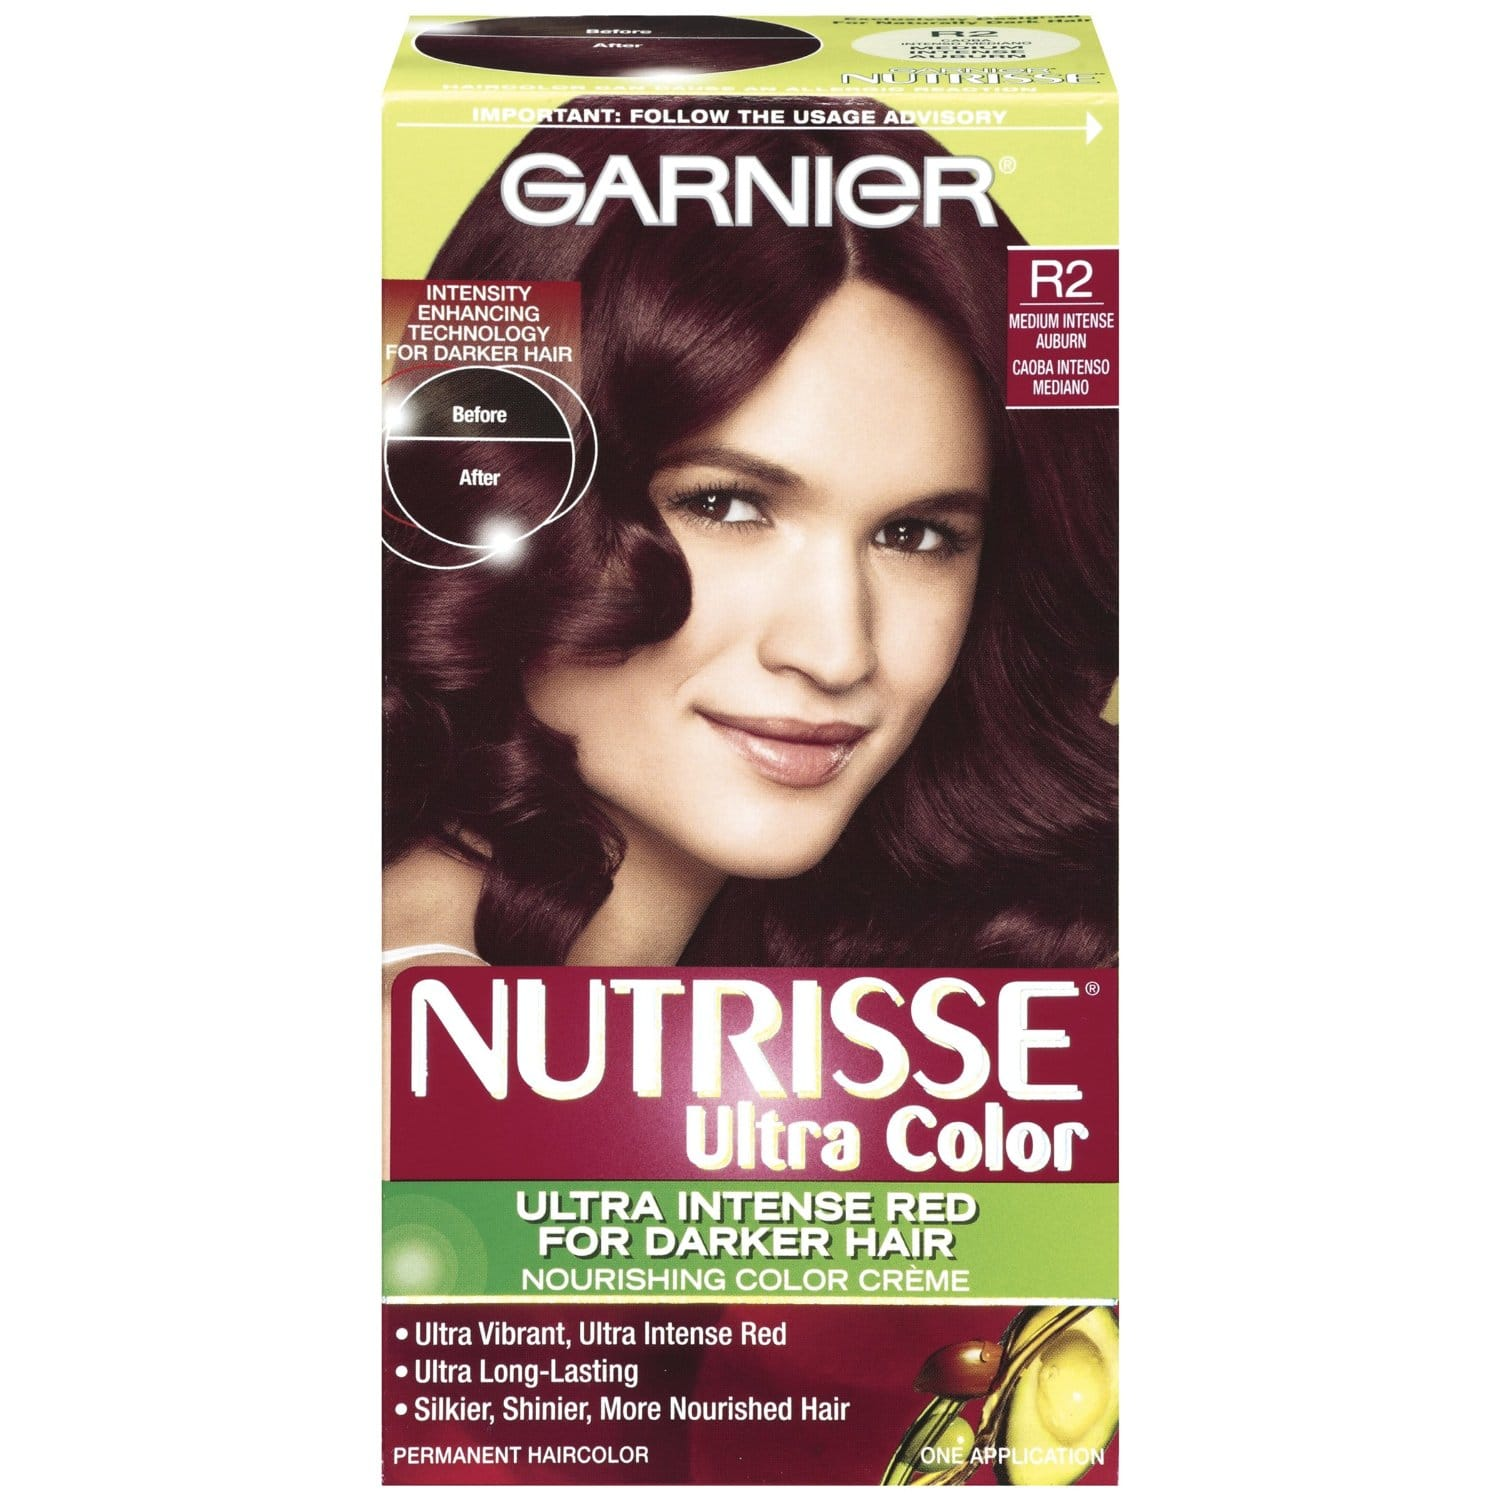 Garnier Nutrisse Ultra Color Nourishing Color Creme, R2 Medium Intense Auburn $1.13 or less + free shipping